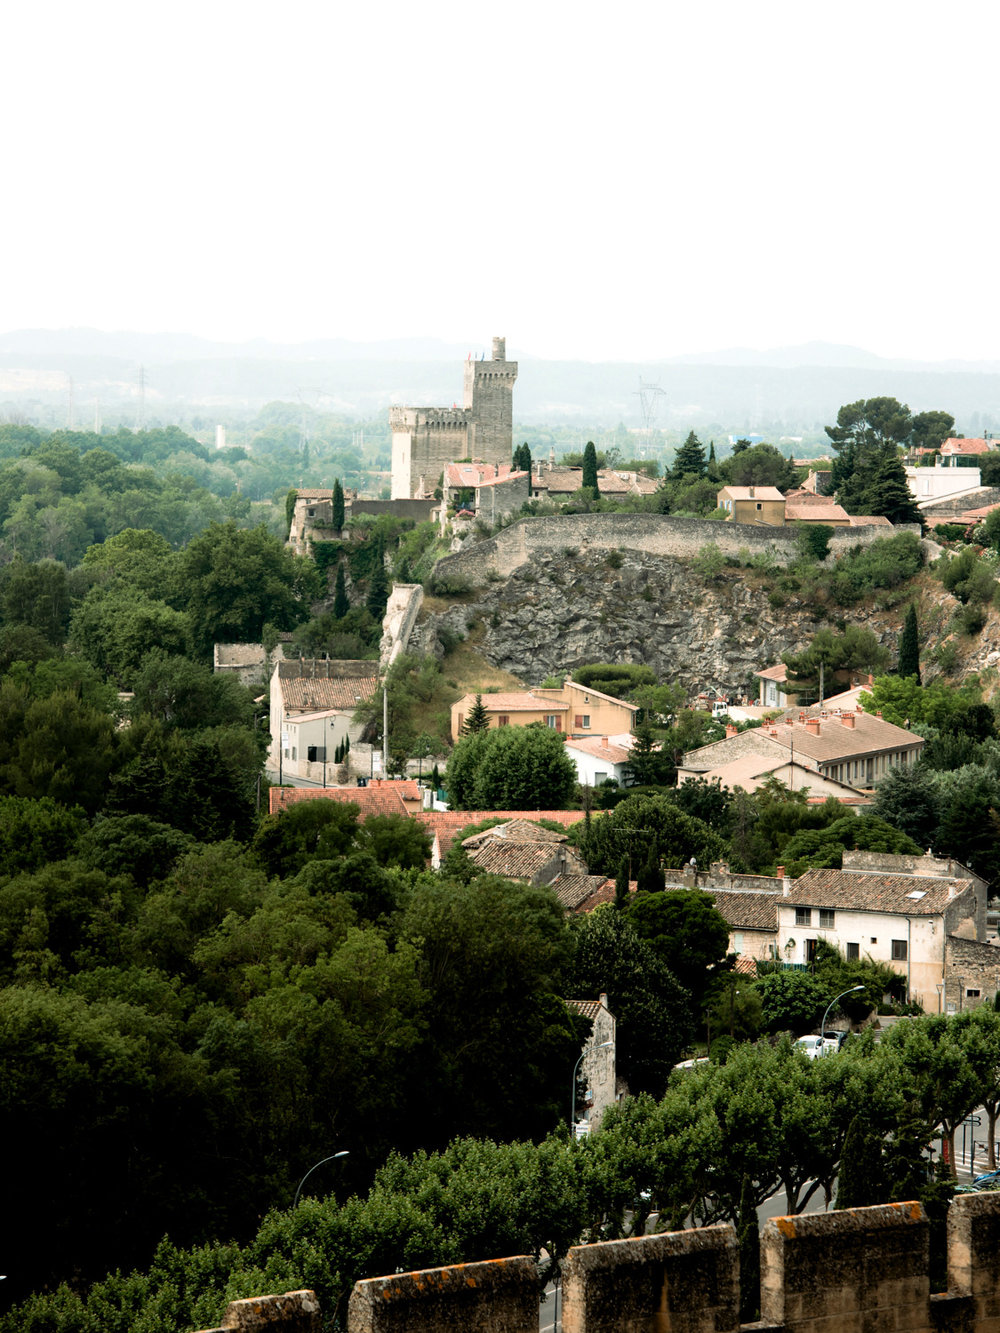 Another tower visible from Fort Saint-andre in Provence France.